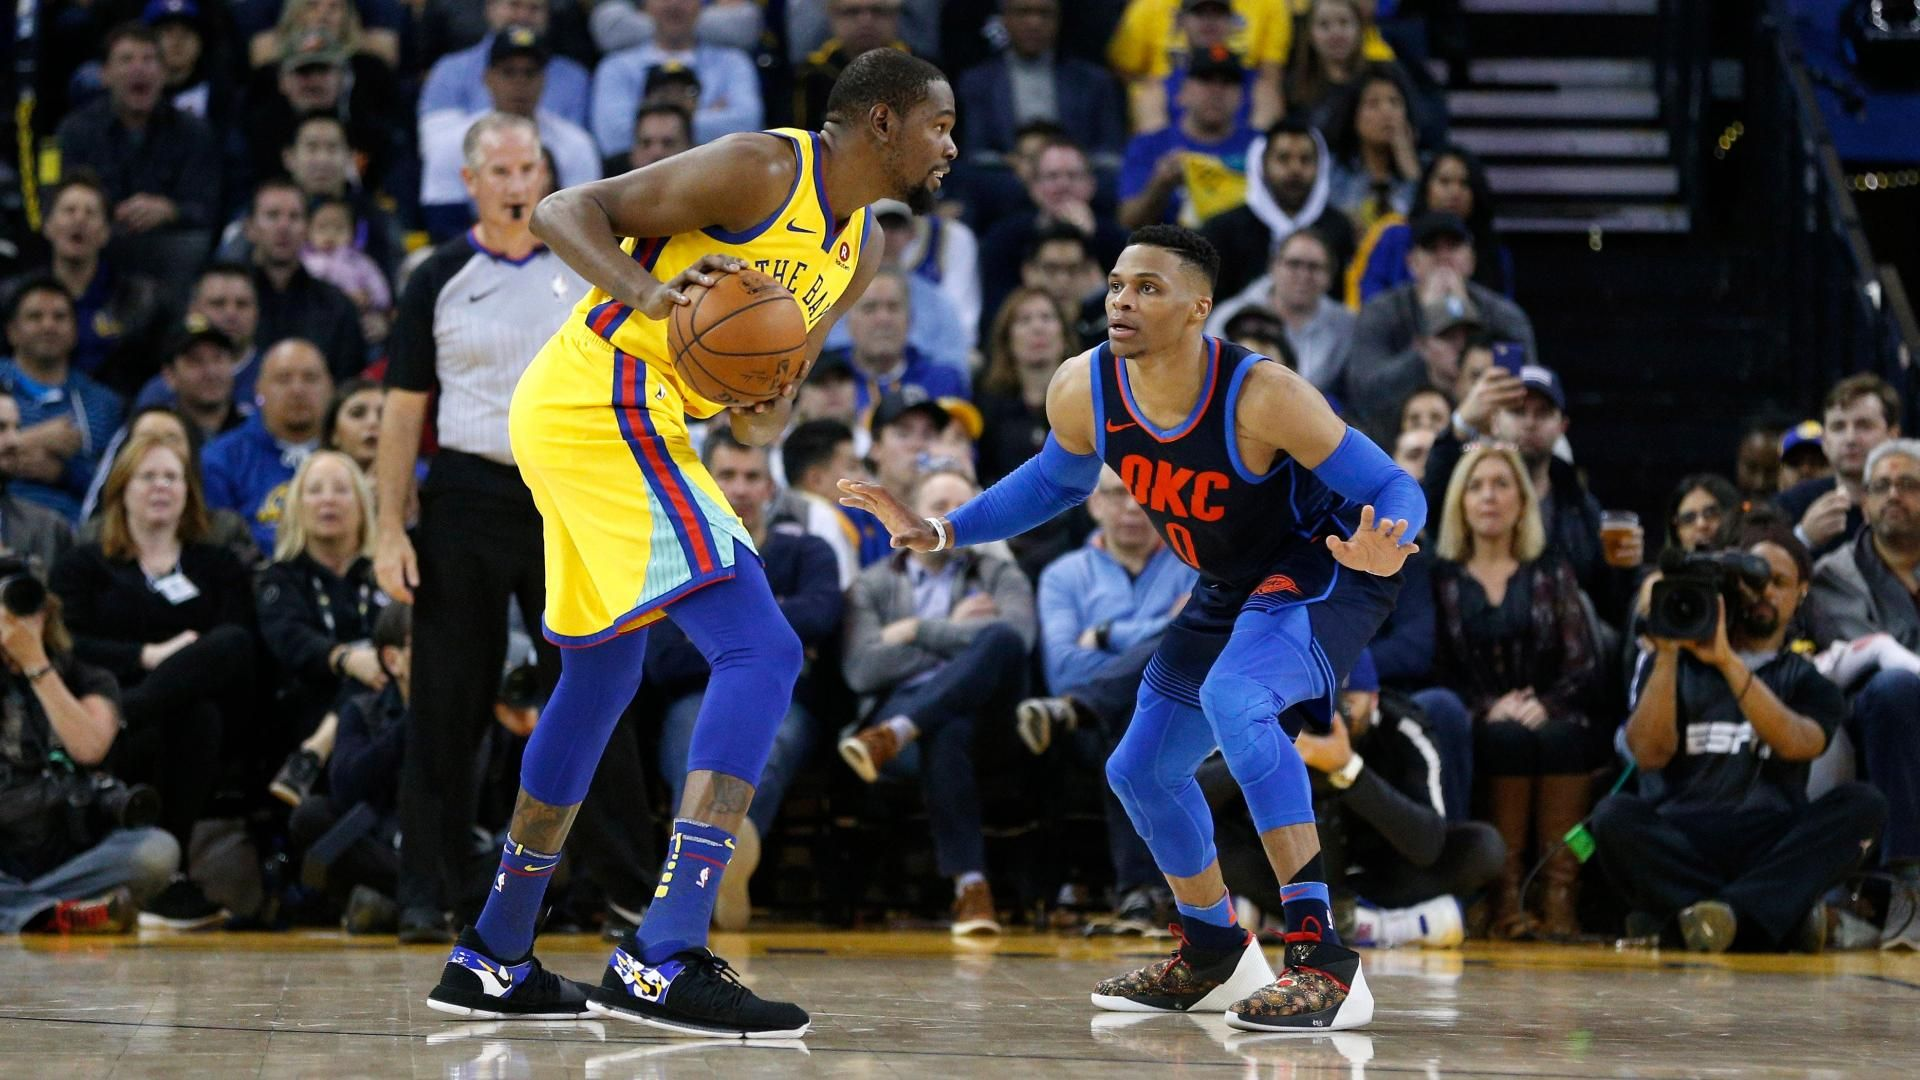 Dubs down Thunder in heated battle